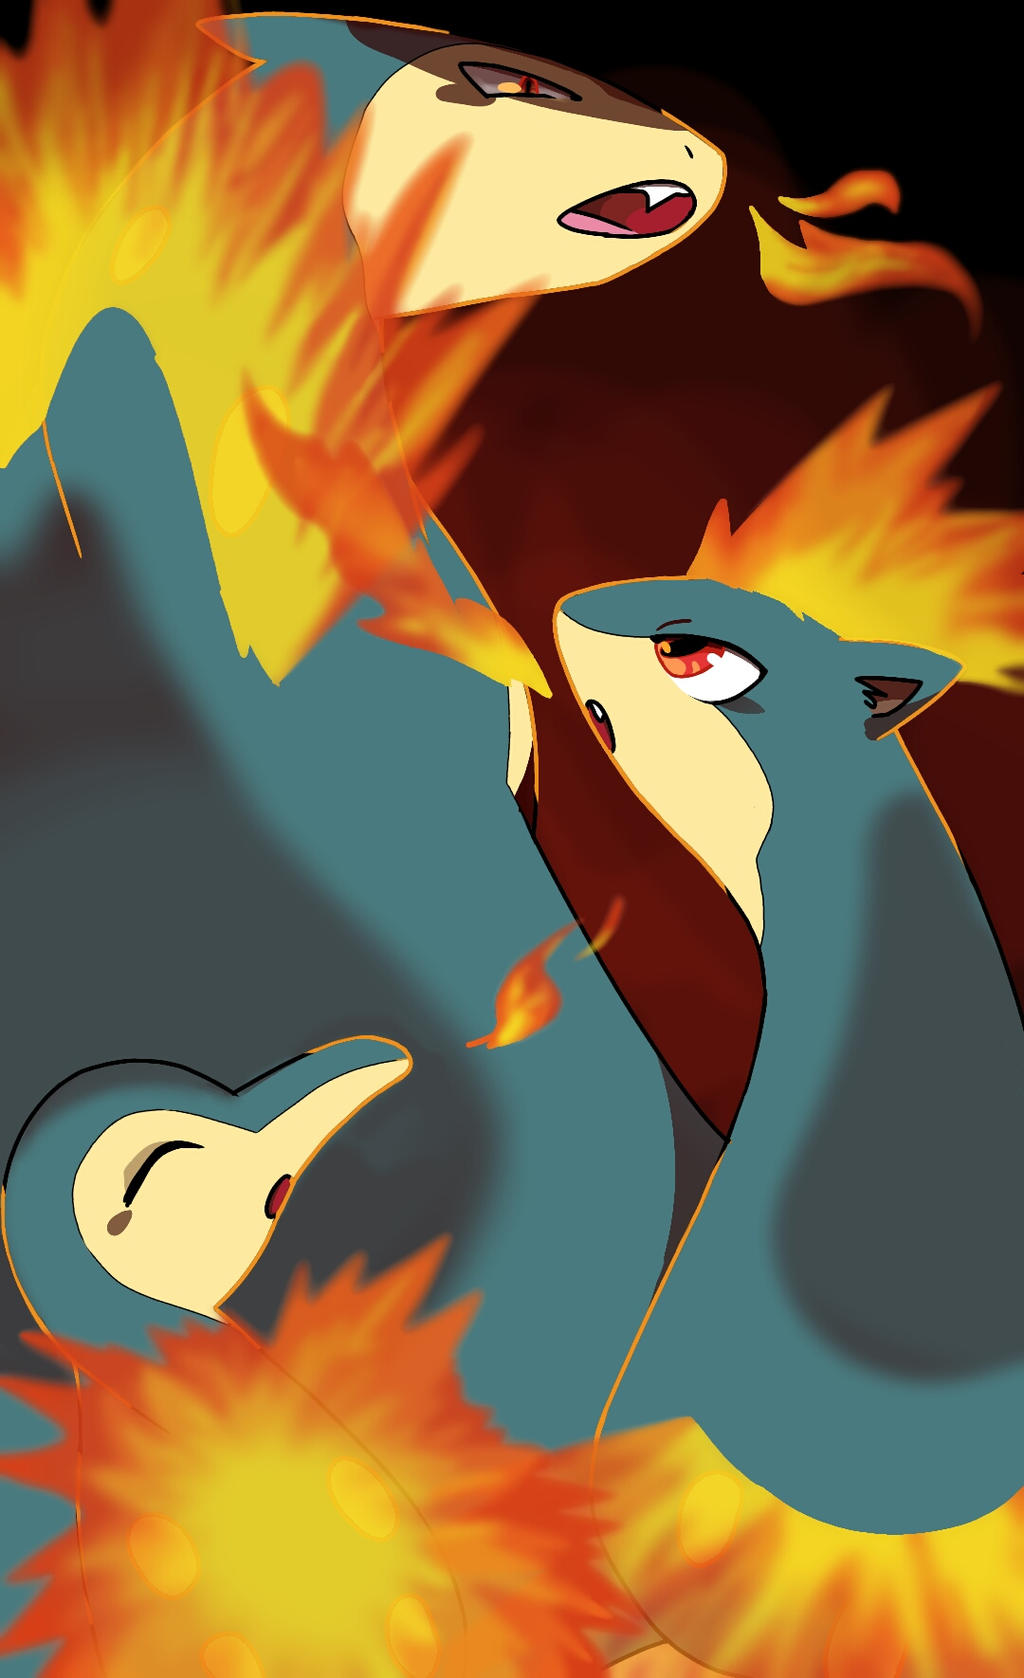 cyndaquil typhlosion quilava - photo #14